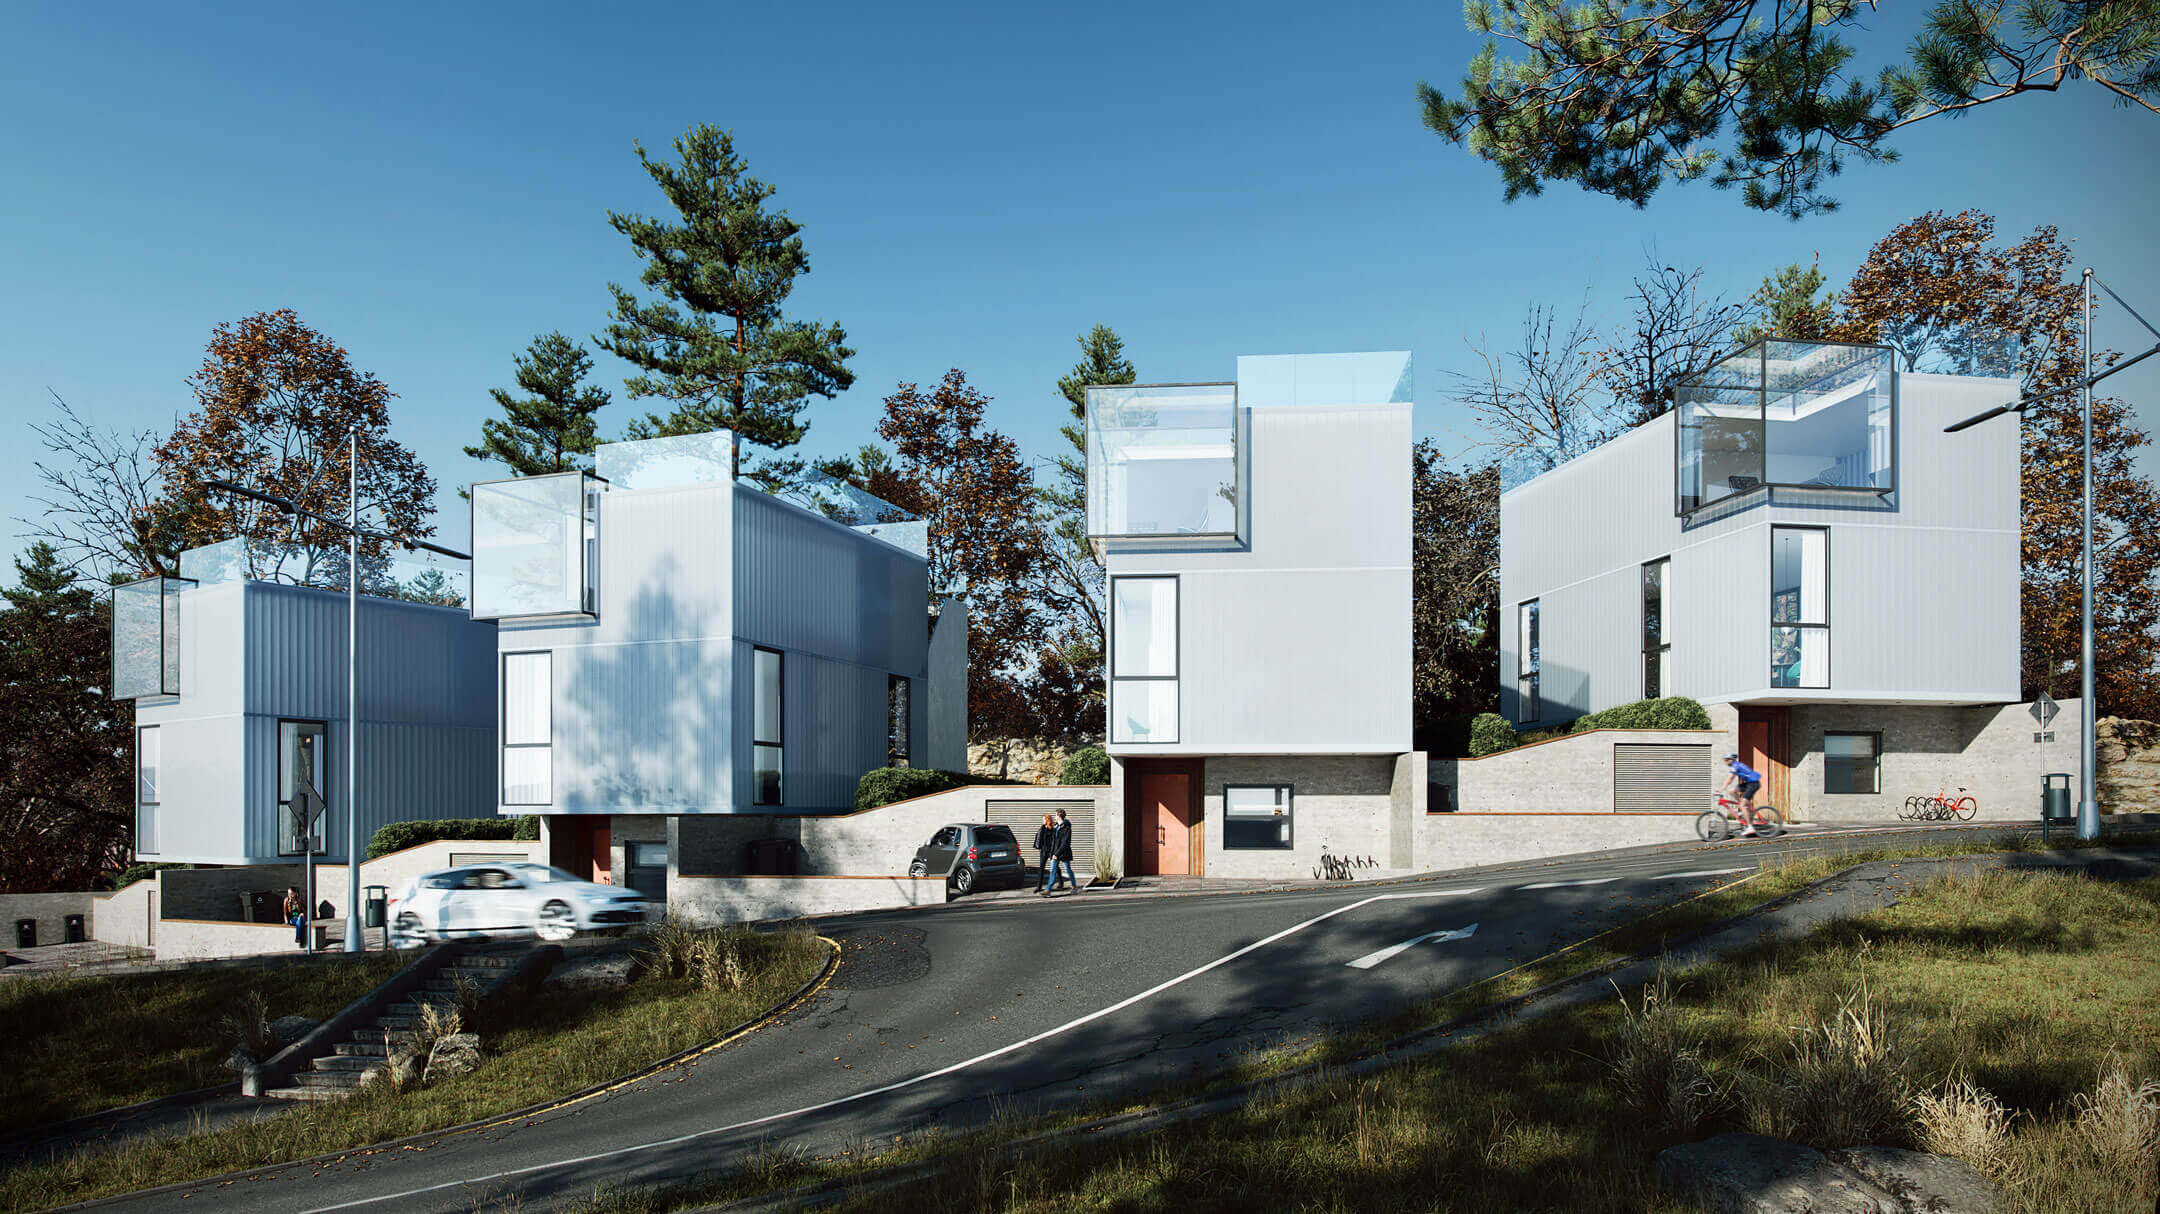 3D Architectural Rendering Of A Cozy Neighbourhood